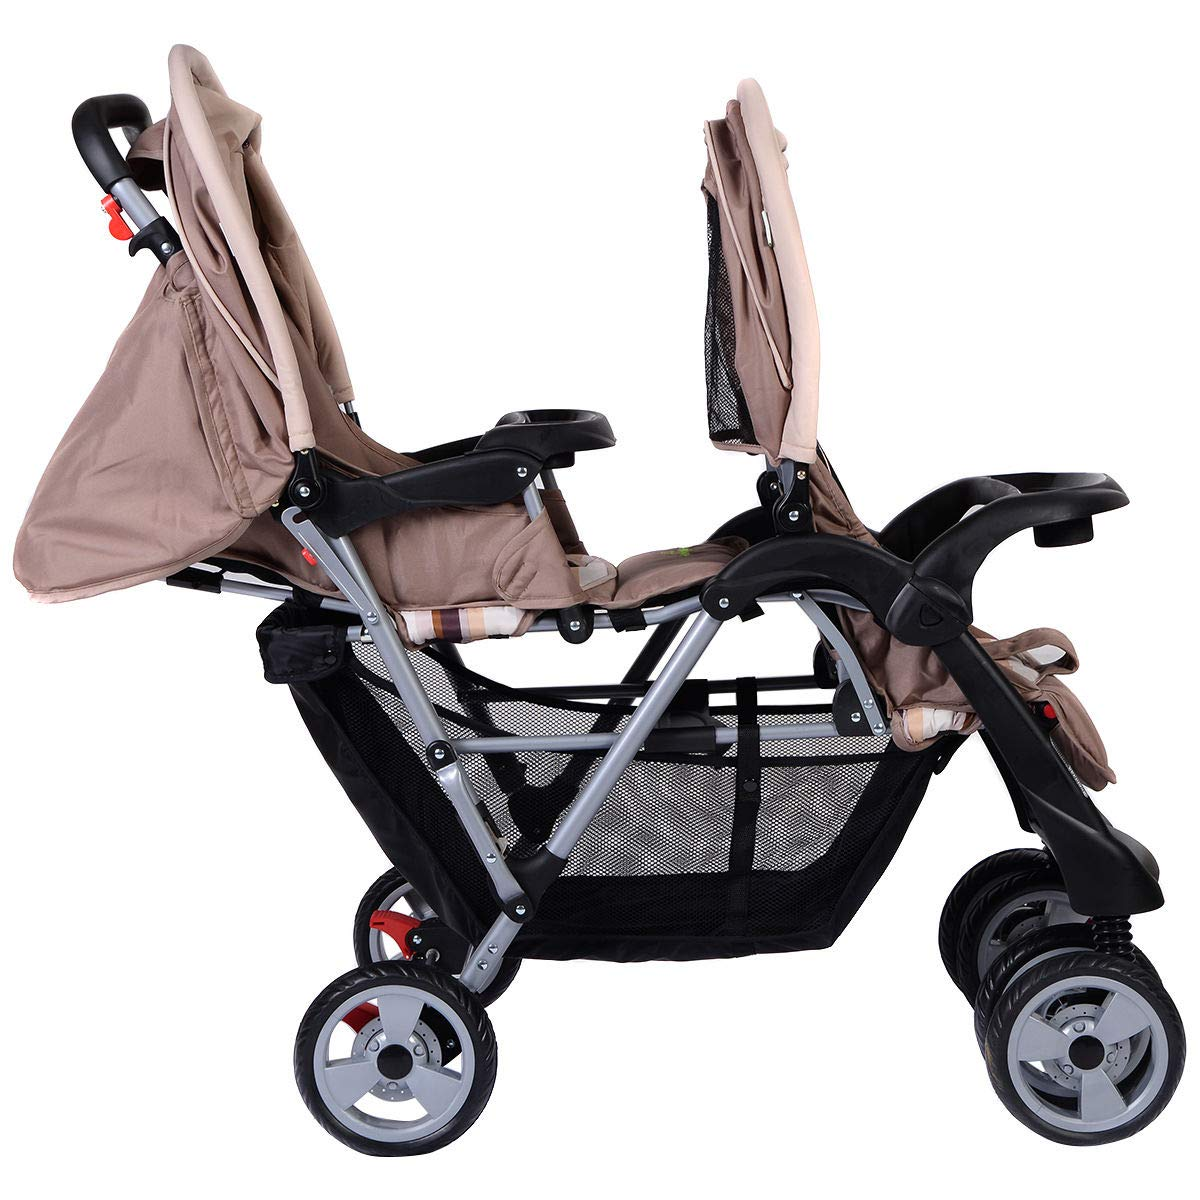 Foldable Twin Baby Double Stroller Kids Jogger Travel Infant Pushchair Gray by Apontus (Image #2)